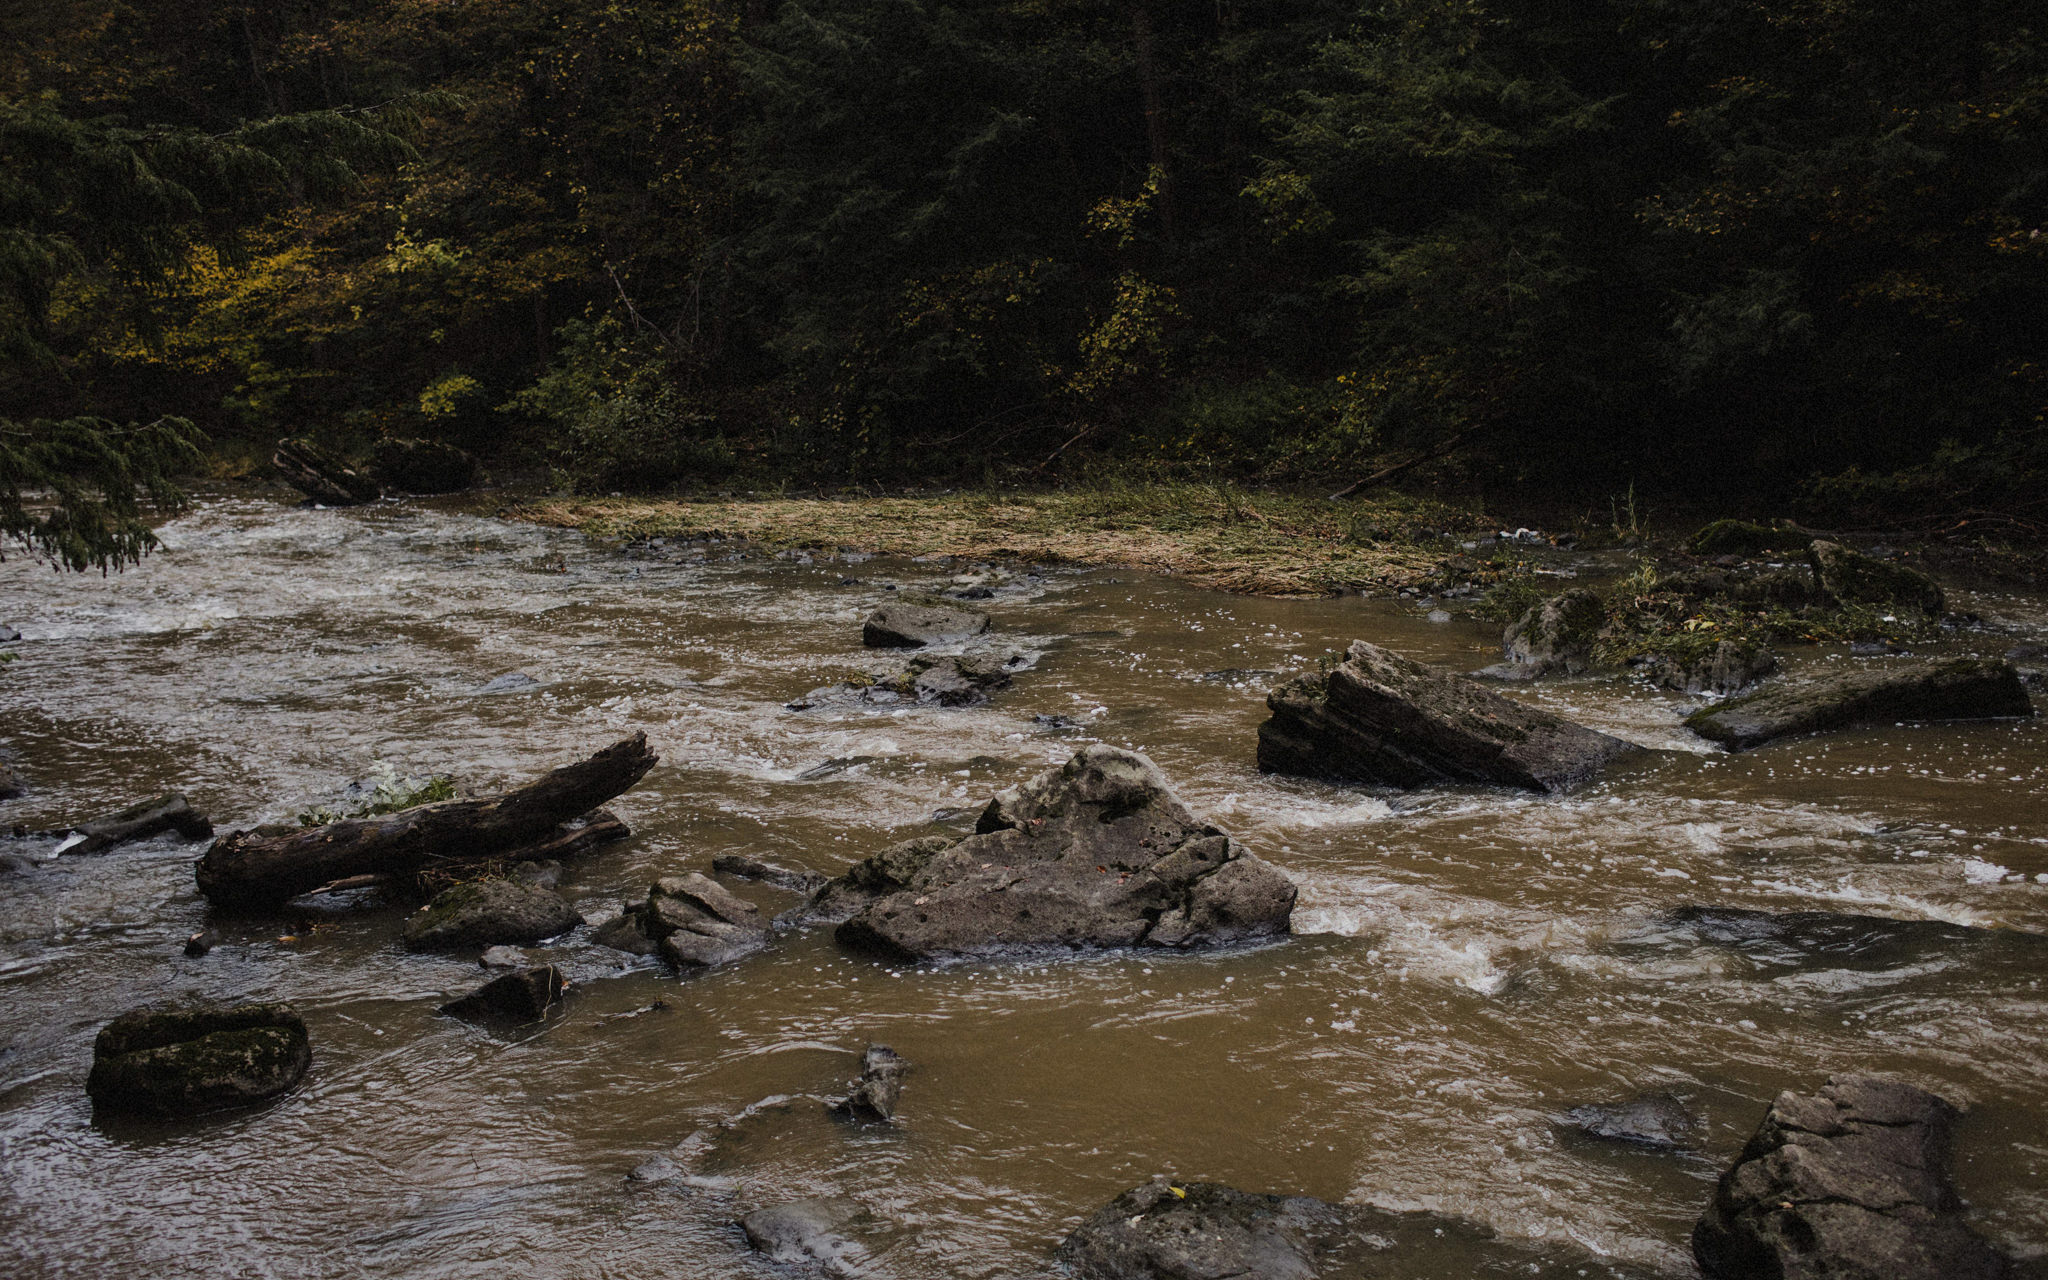 water rushes over rocks